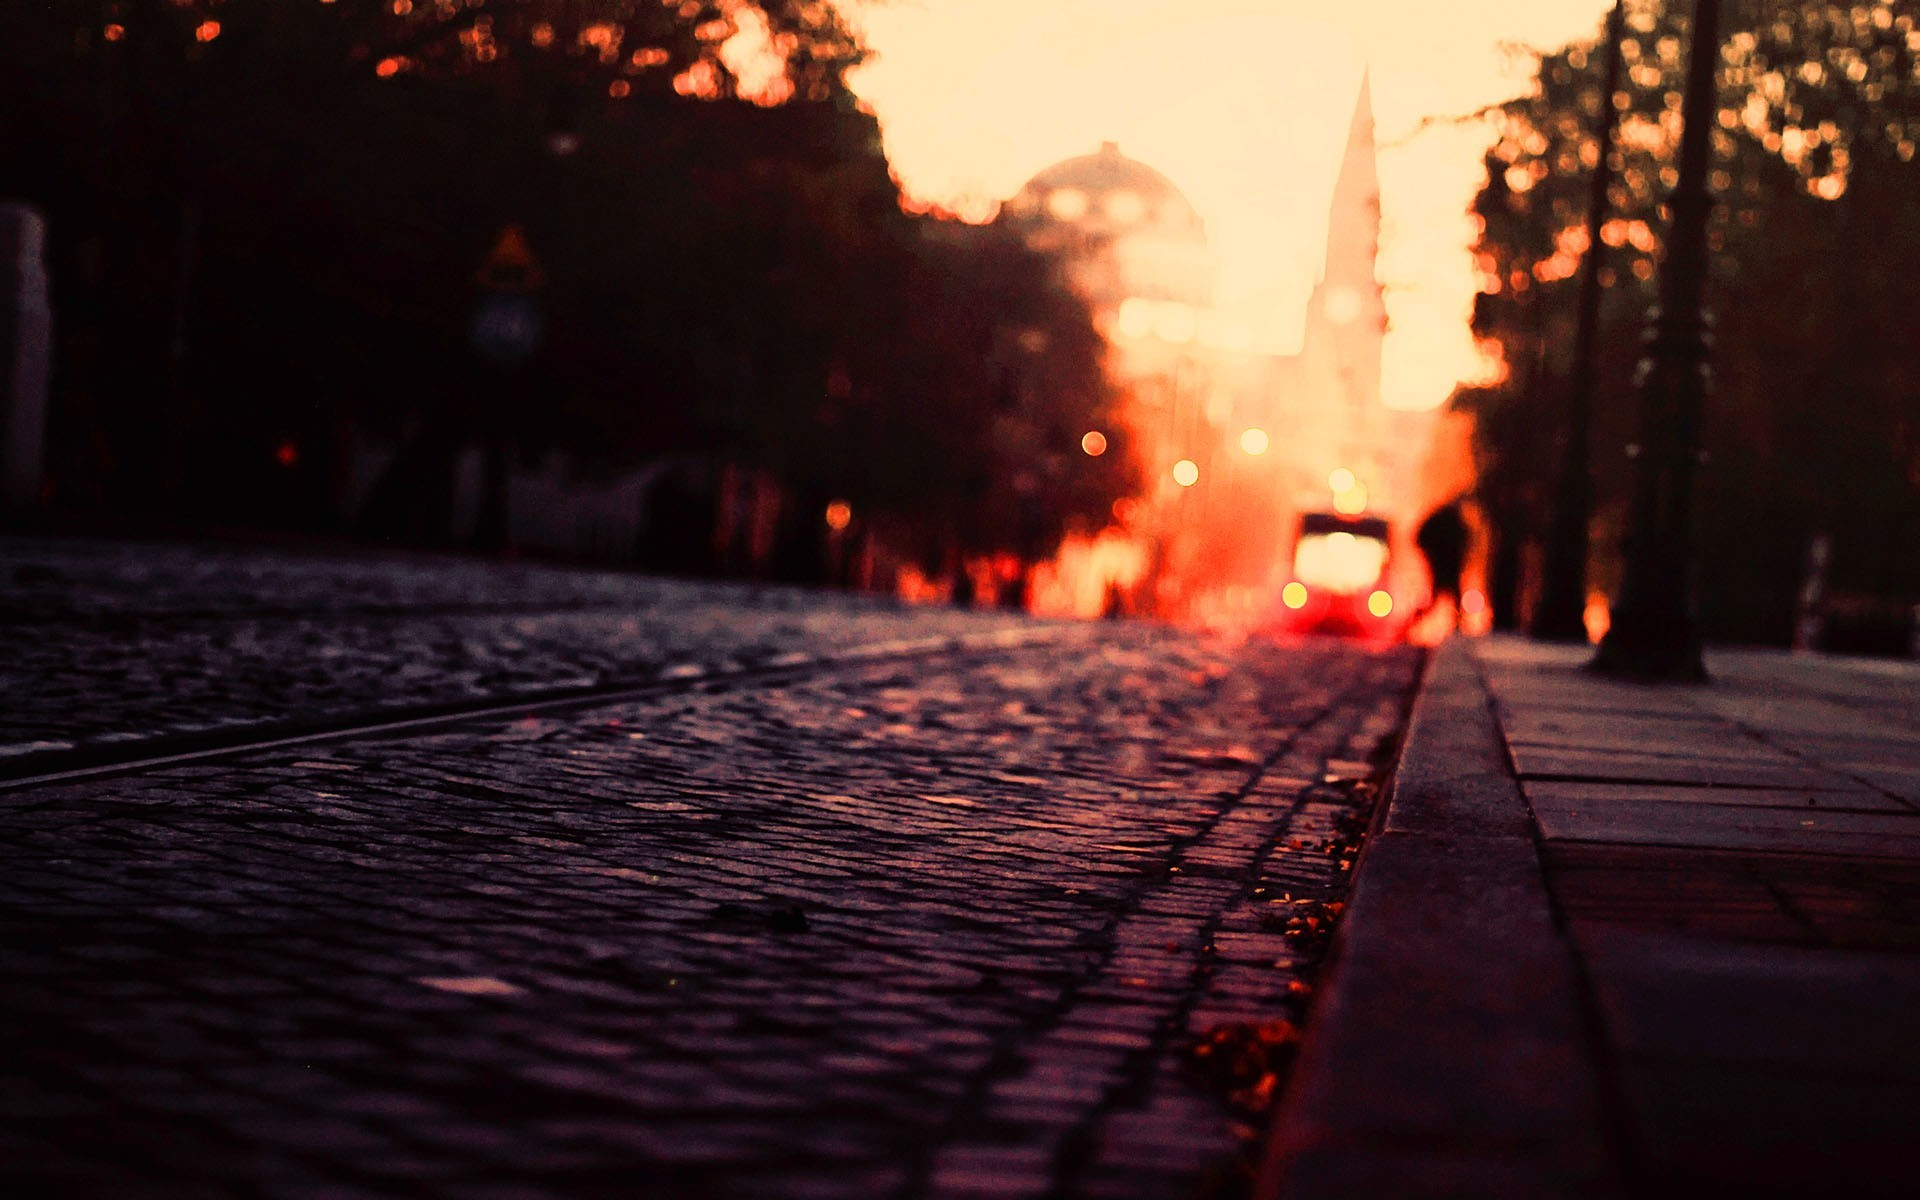 1920x1080 Fall Urban Wallpaper Urban City Warm Colors Fall Road Tram Cobblestone